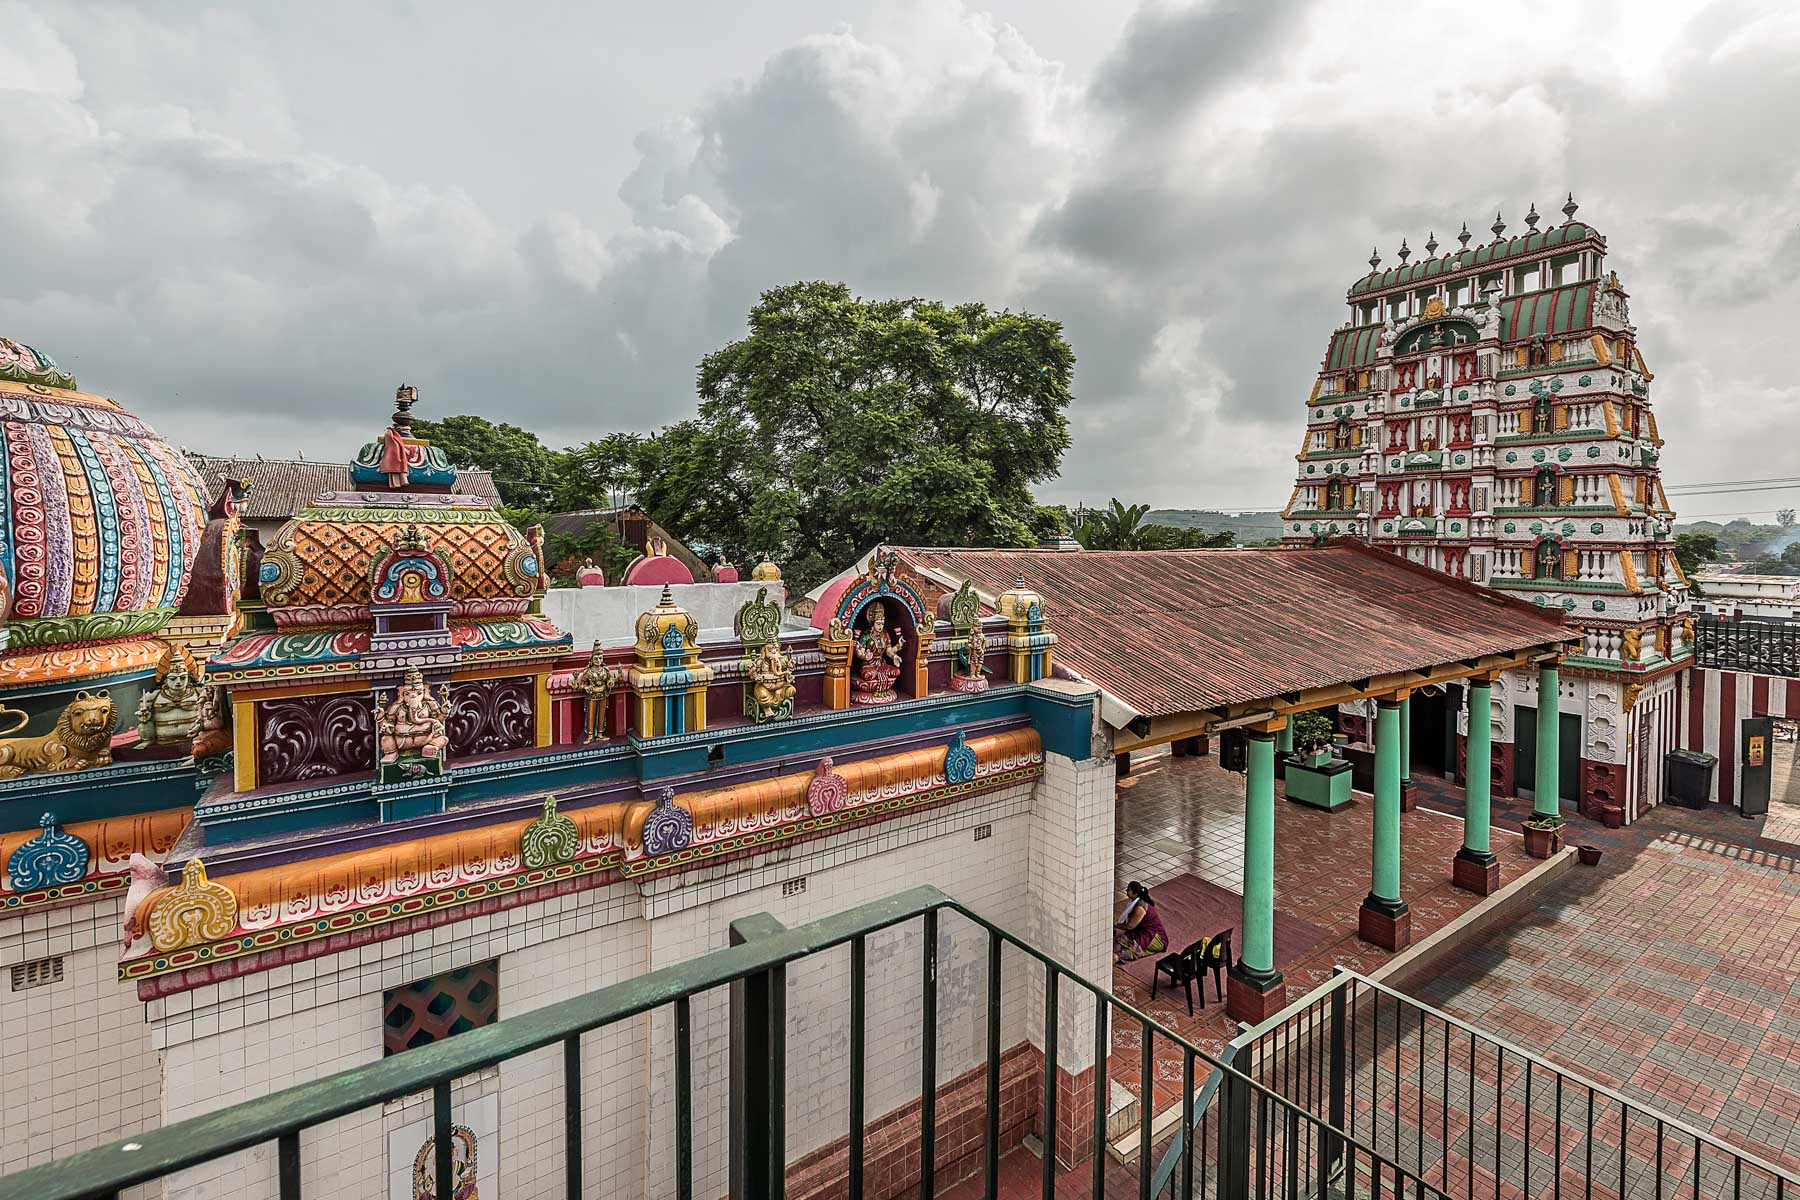 Undated: The temple is dedicated to the supreme being or Brahman in the form of the divine mother Mariamman (the rain goddess), also known as Shakthi, Devi, Durga, Kali or Parvathy.